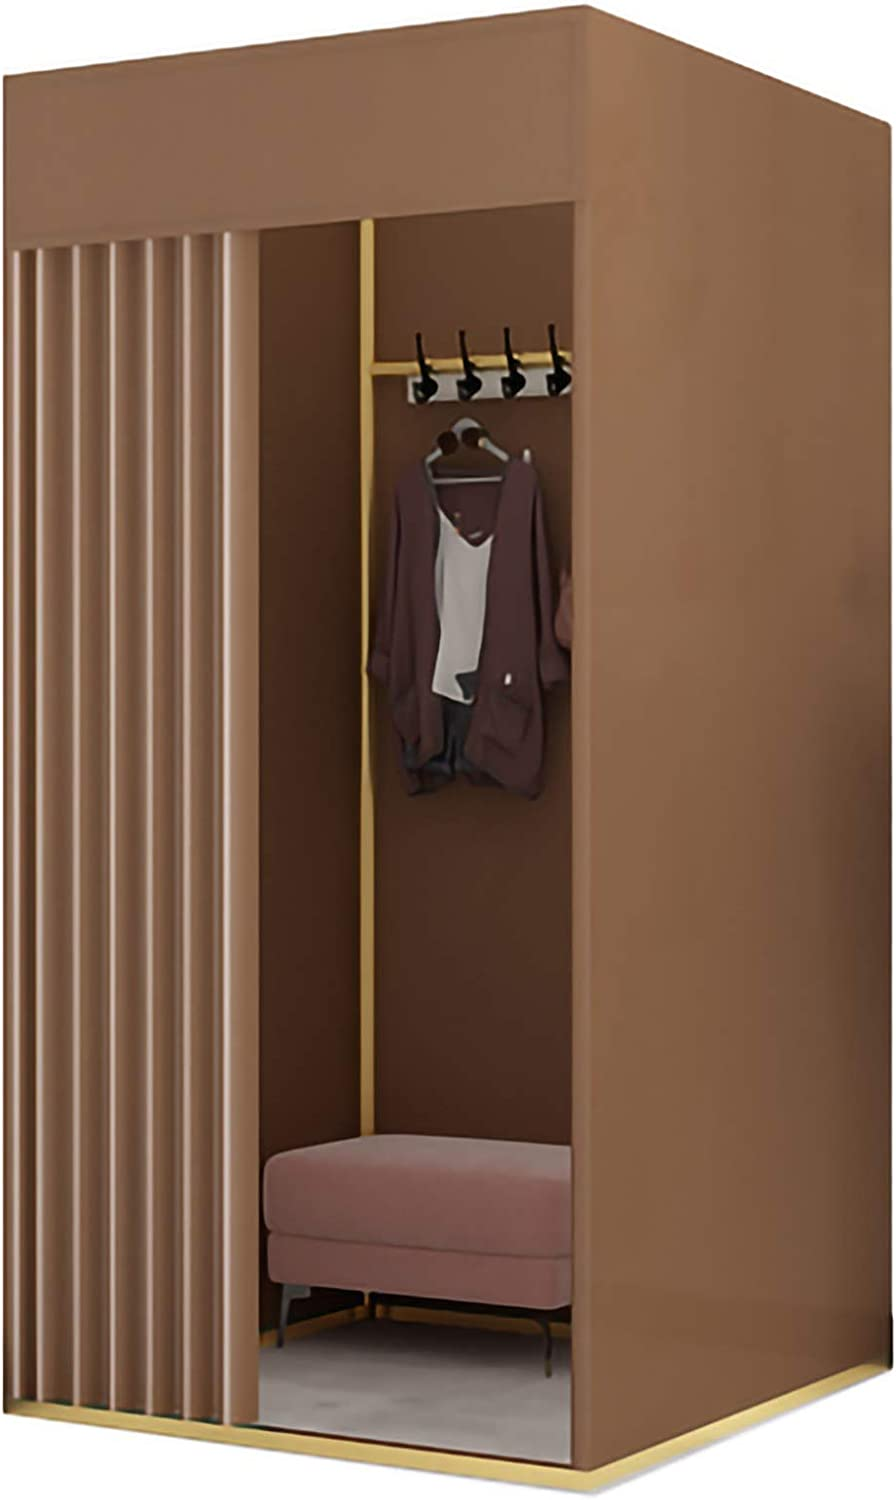 RYDS Dressing Room Foldable Floor Shipping Brand new included Removable Fitting Stand